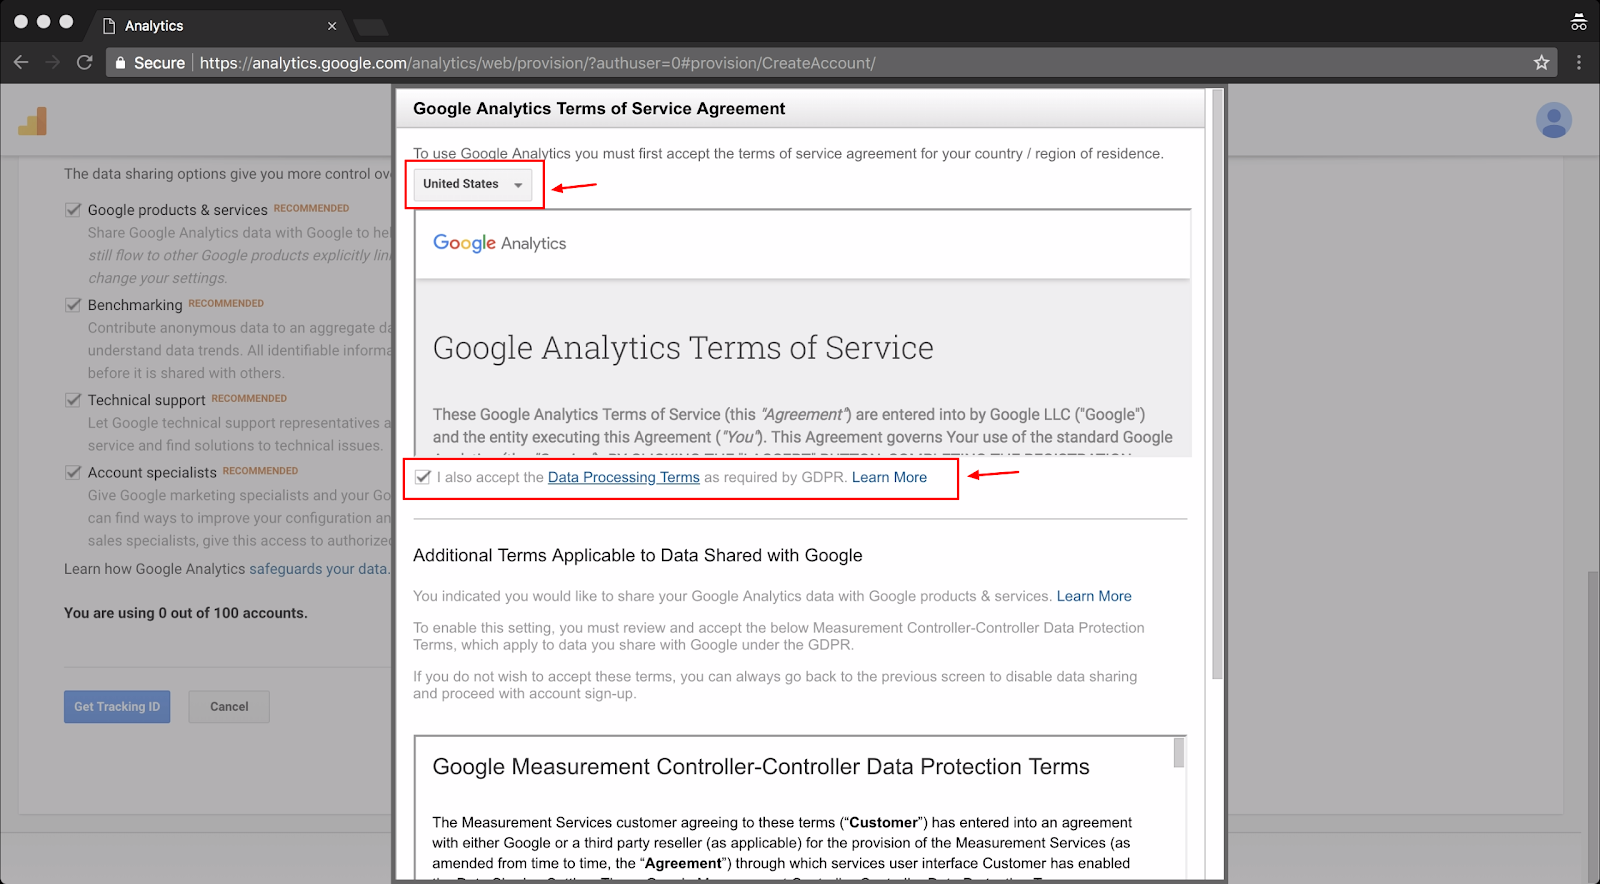 Screenshot showing google analytics terms